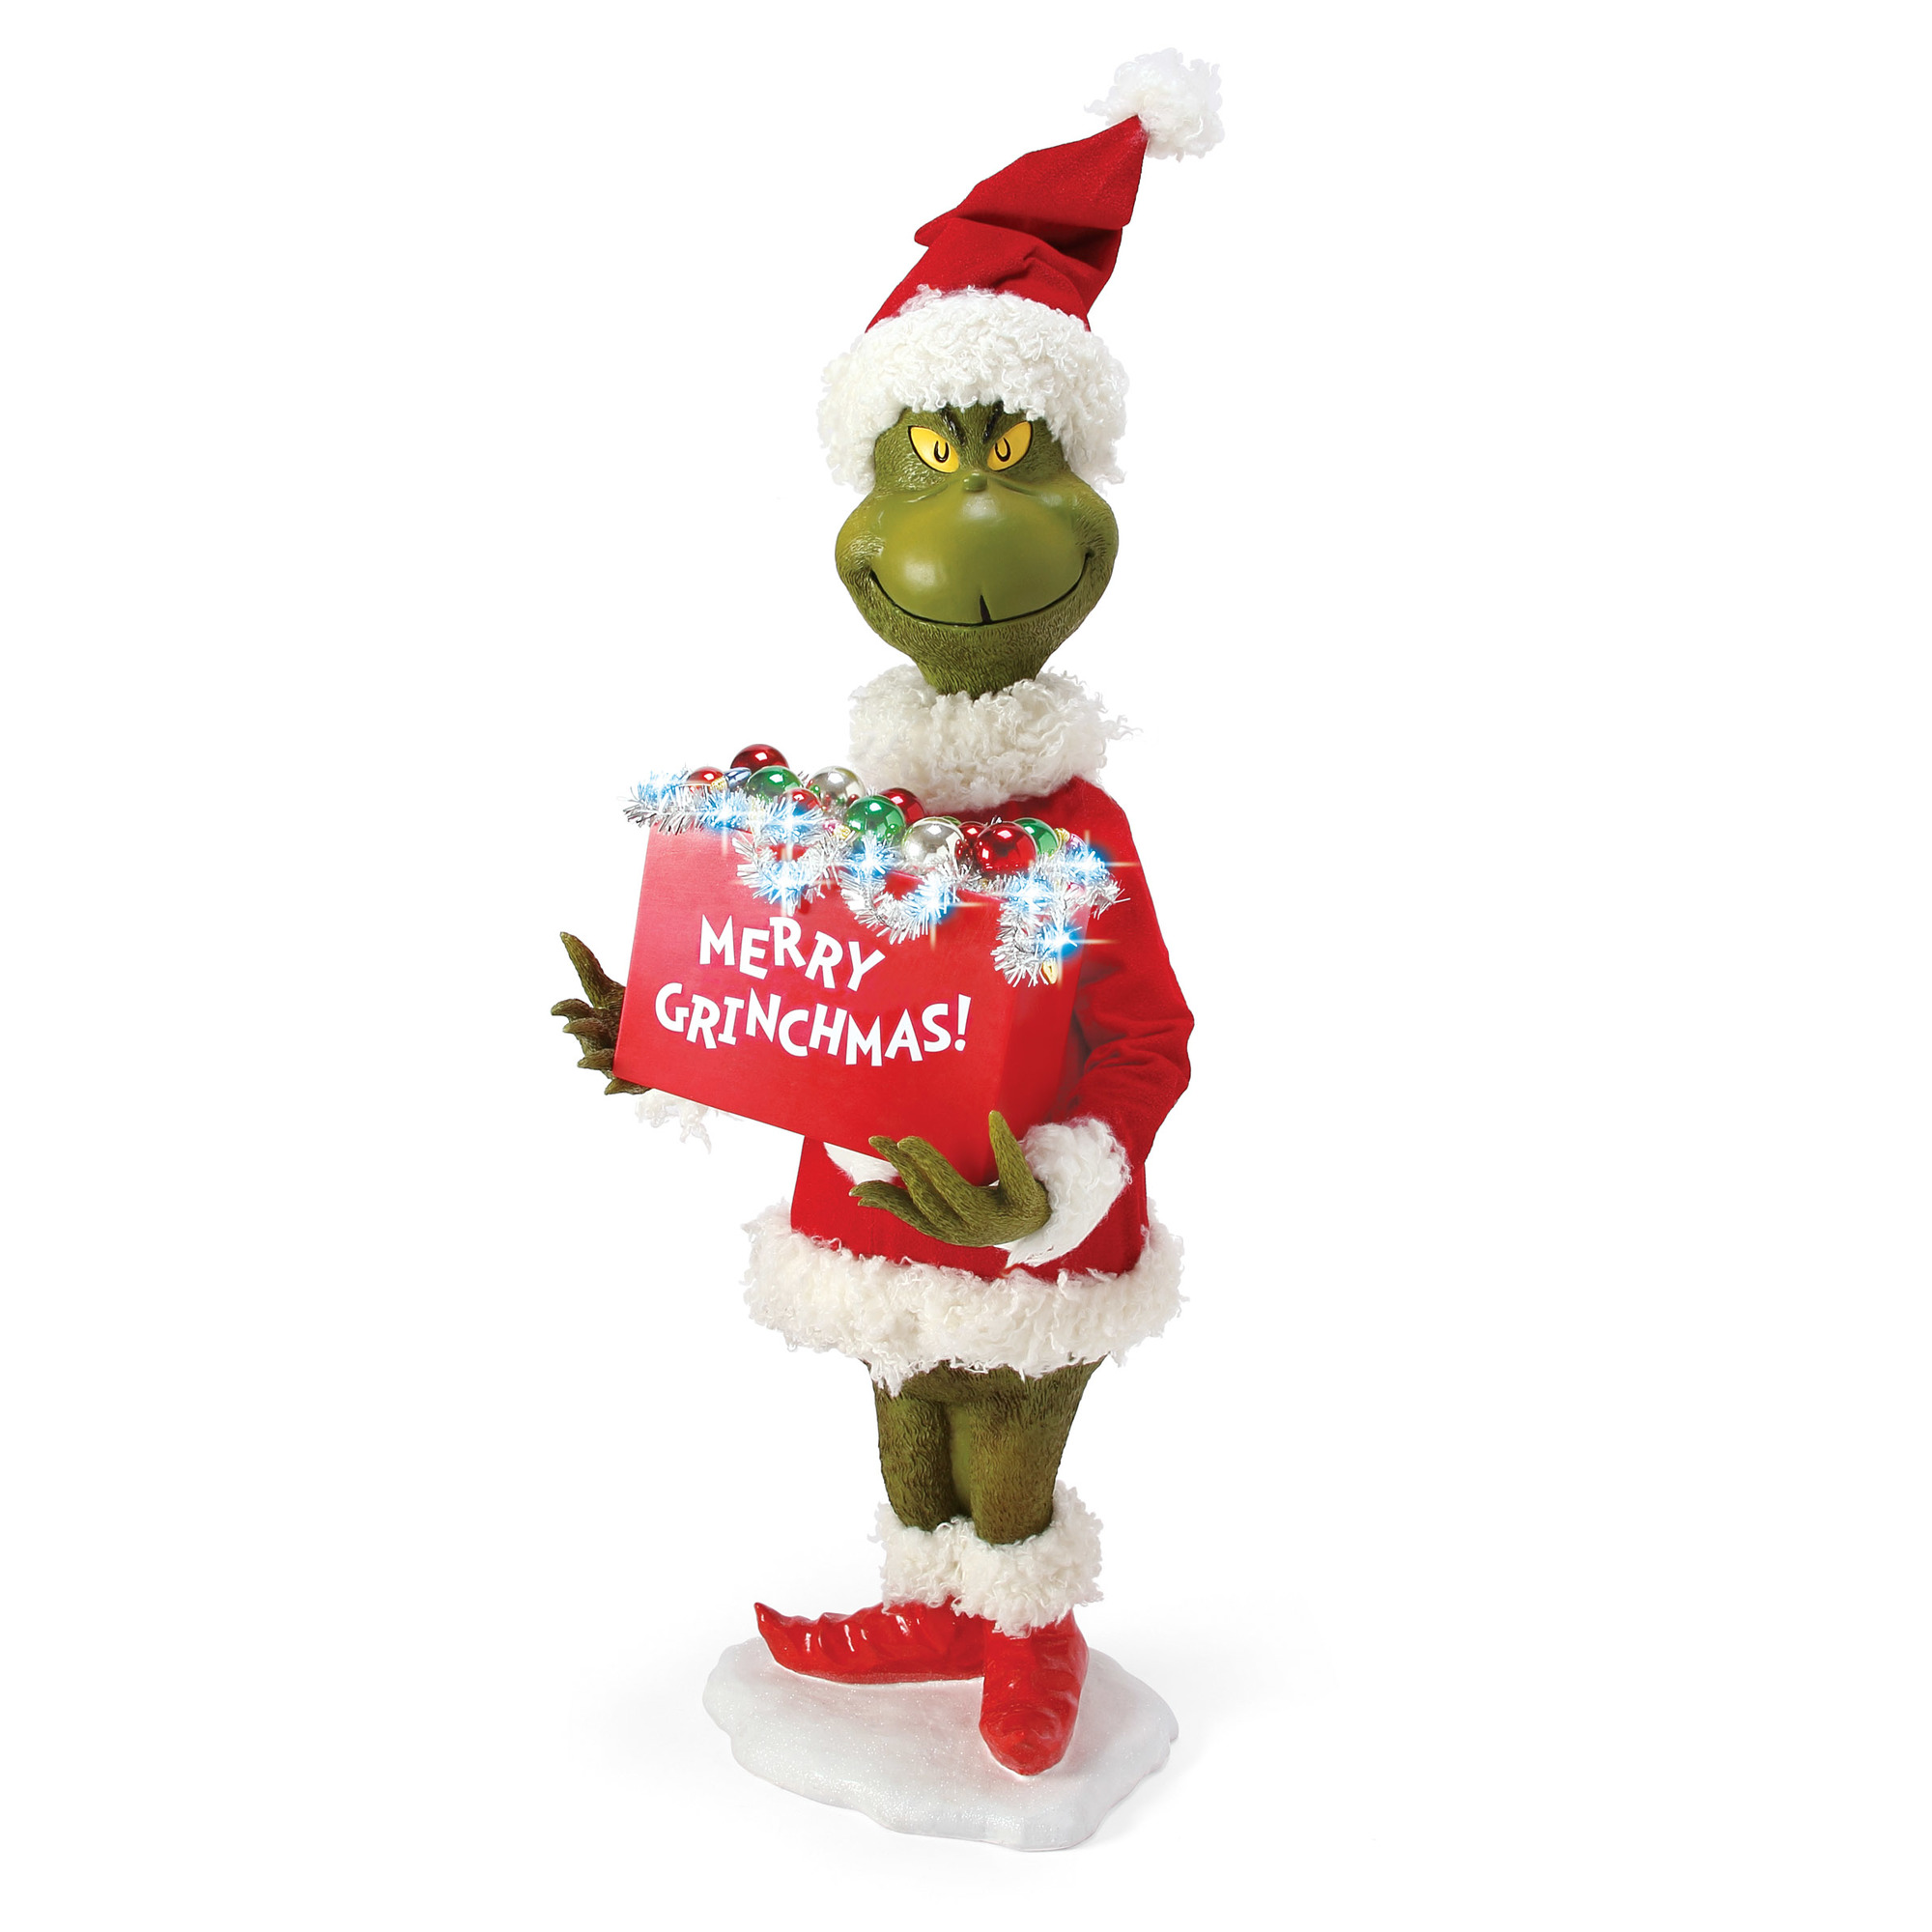 Possible Dreams Grinch Merry Grinchmas Light Up Figure